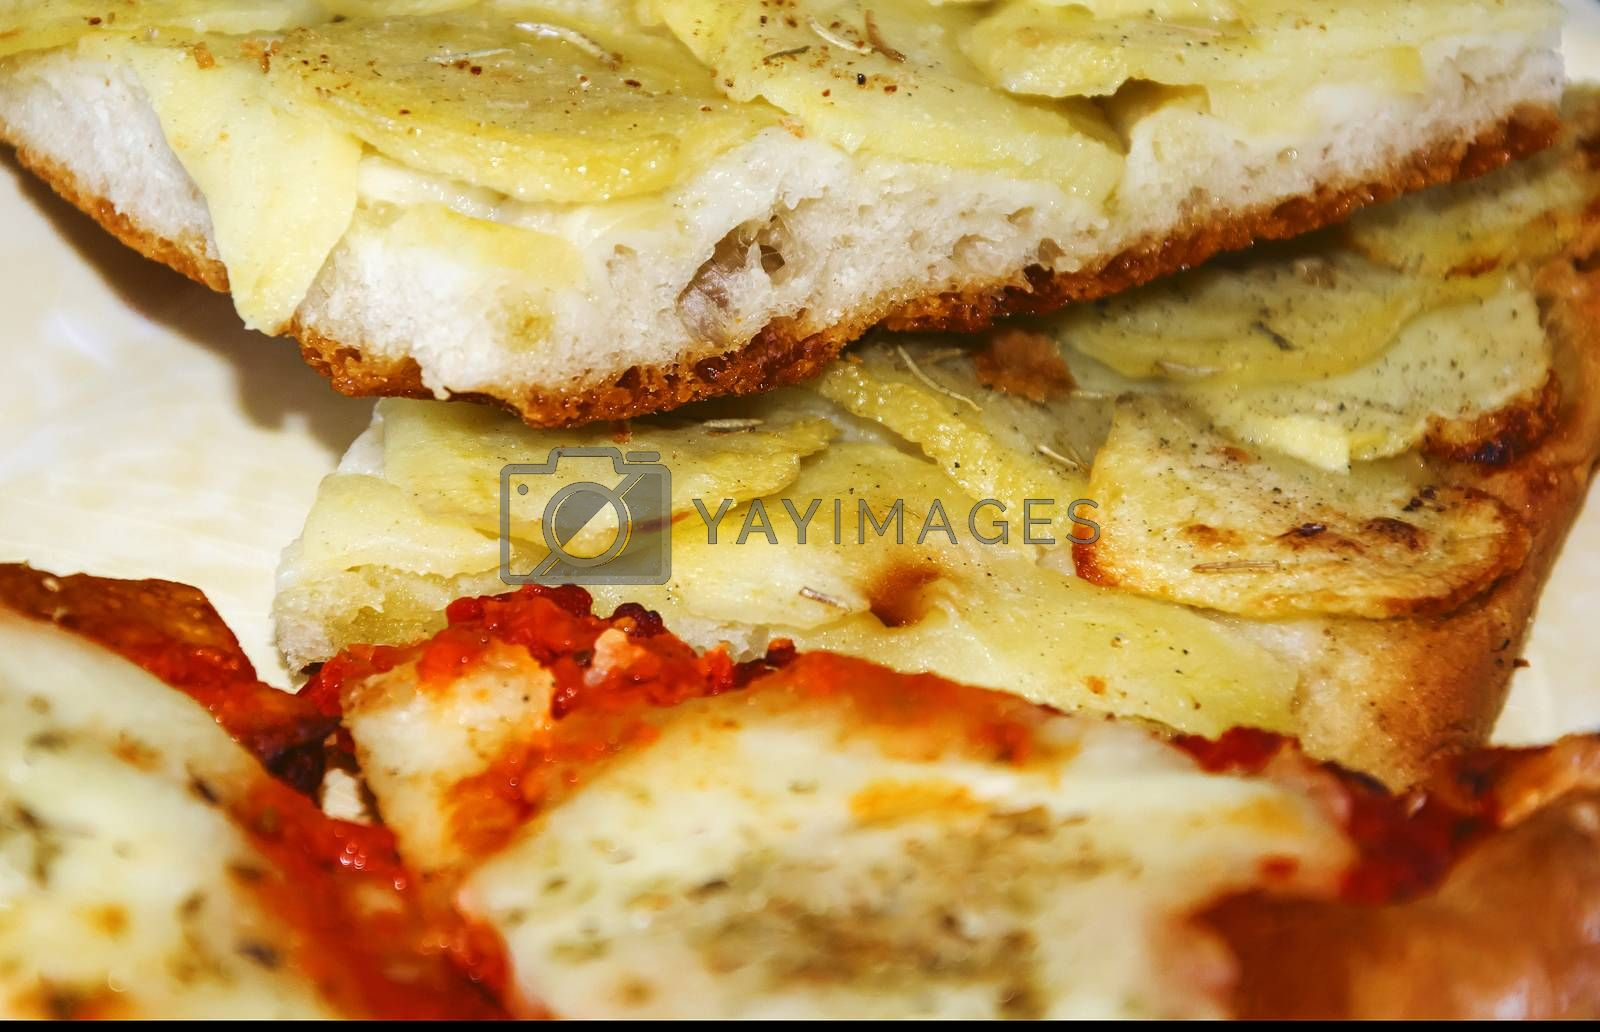 close up of two slices of pizza with tomato, mozzarella and potatoes